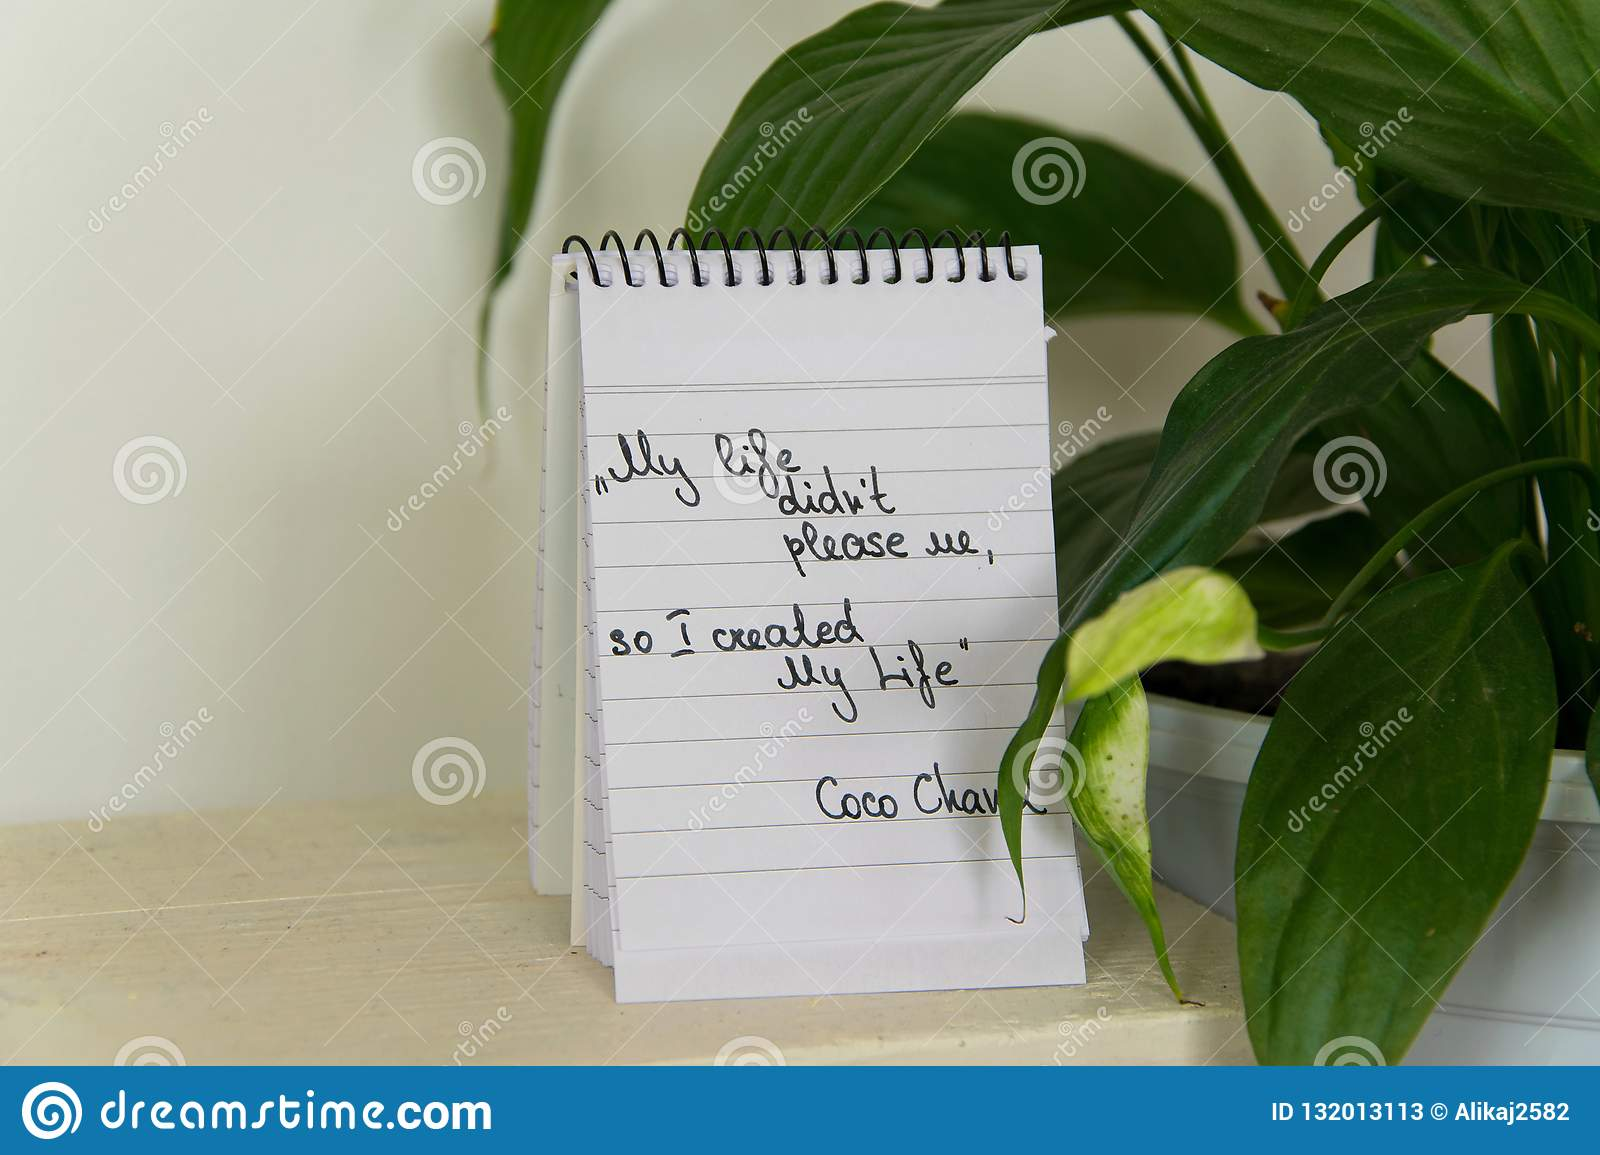 Coco Chanel quotes written on a block note and potted houseplant